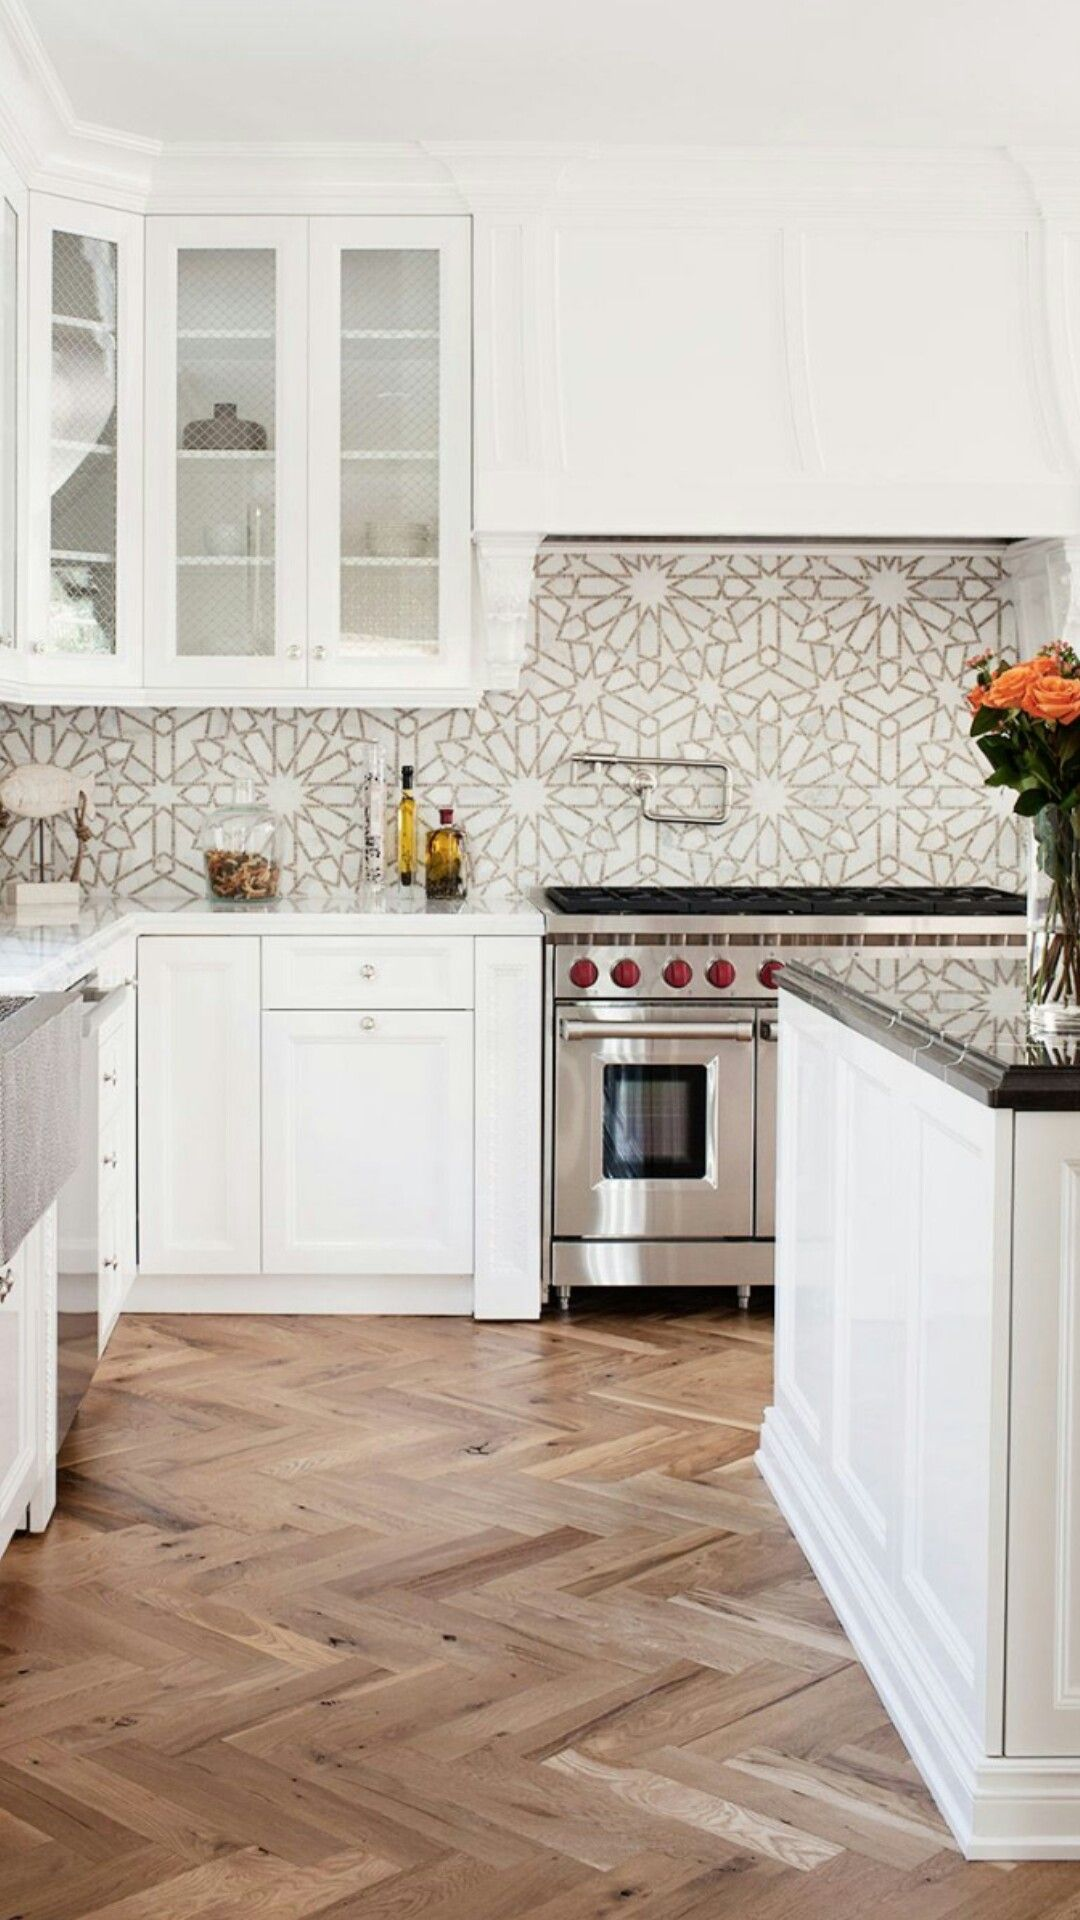 Pin by abby davis on kitchen inspiration pinterest tile painting house dailygadgetfo Gallery